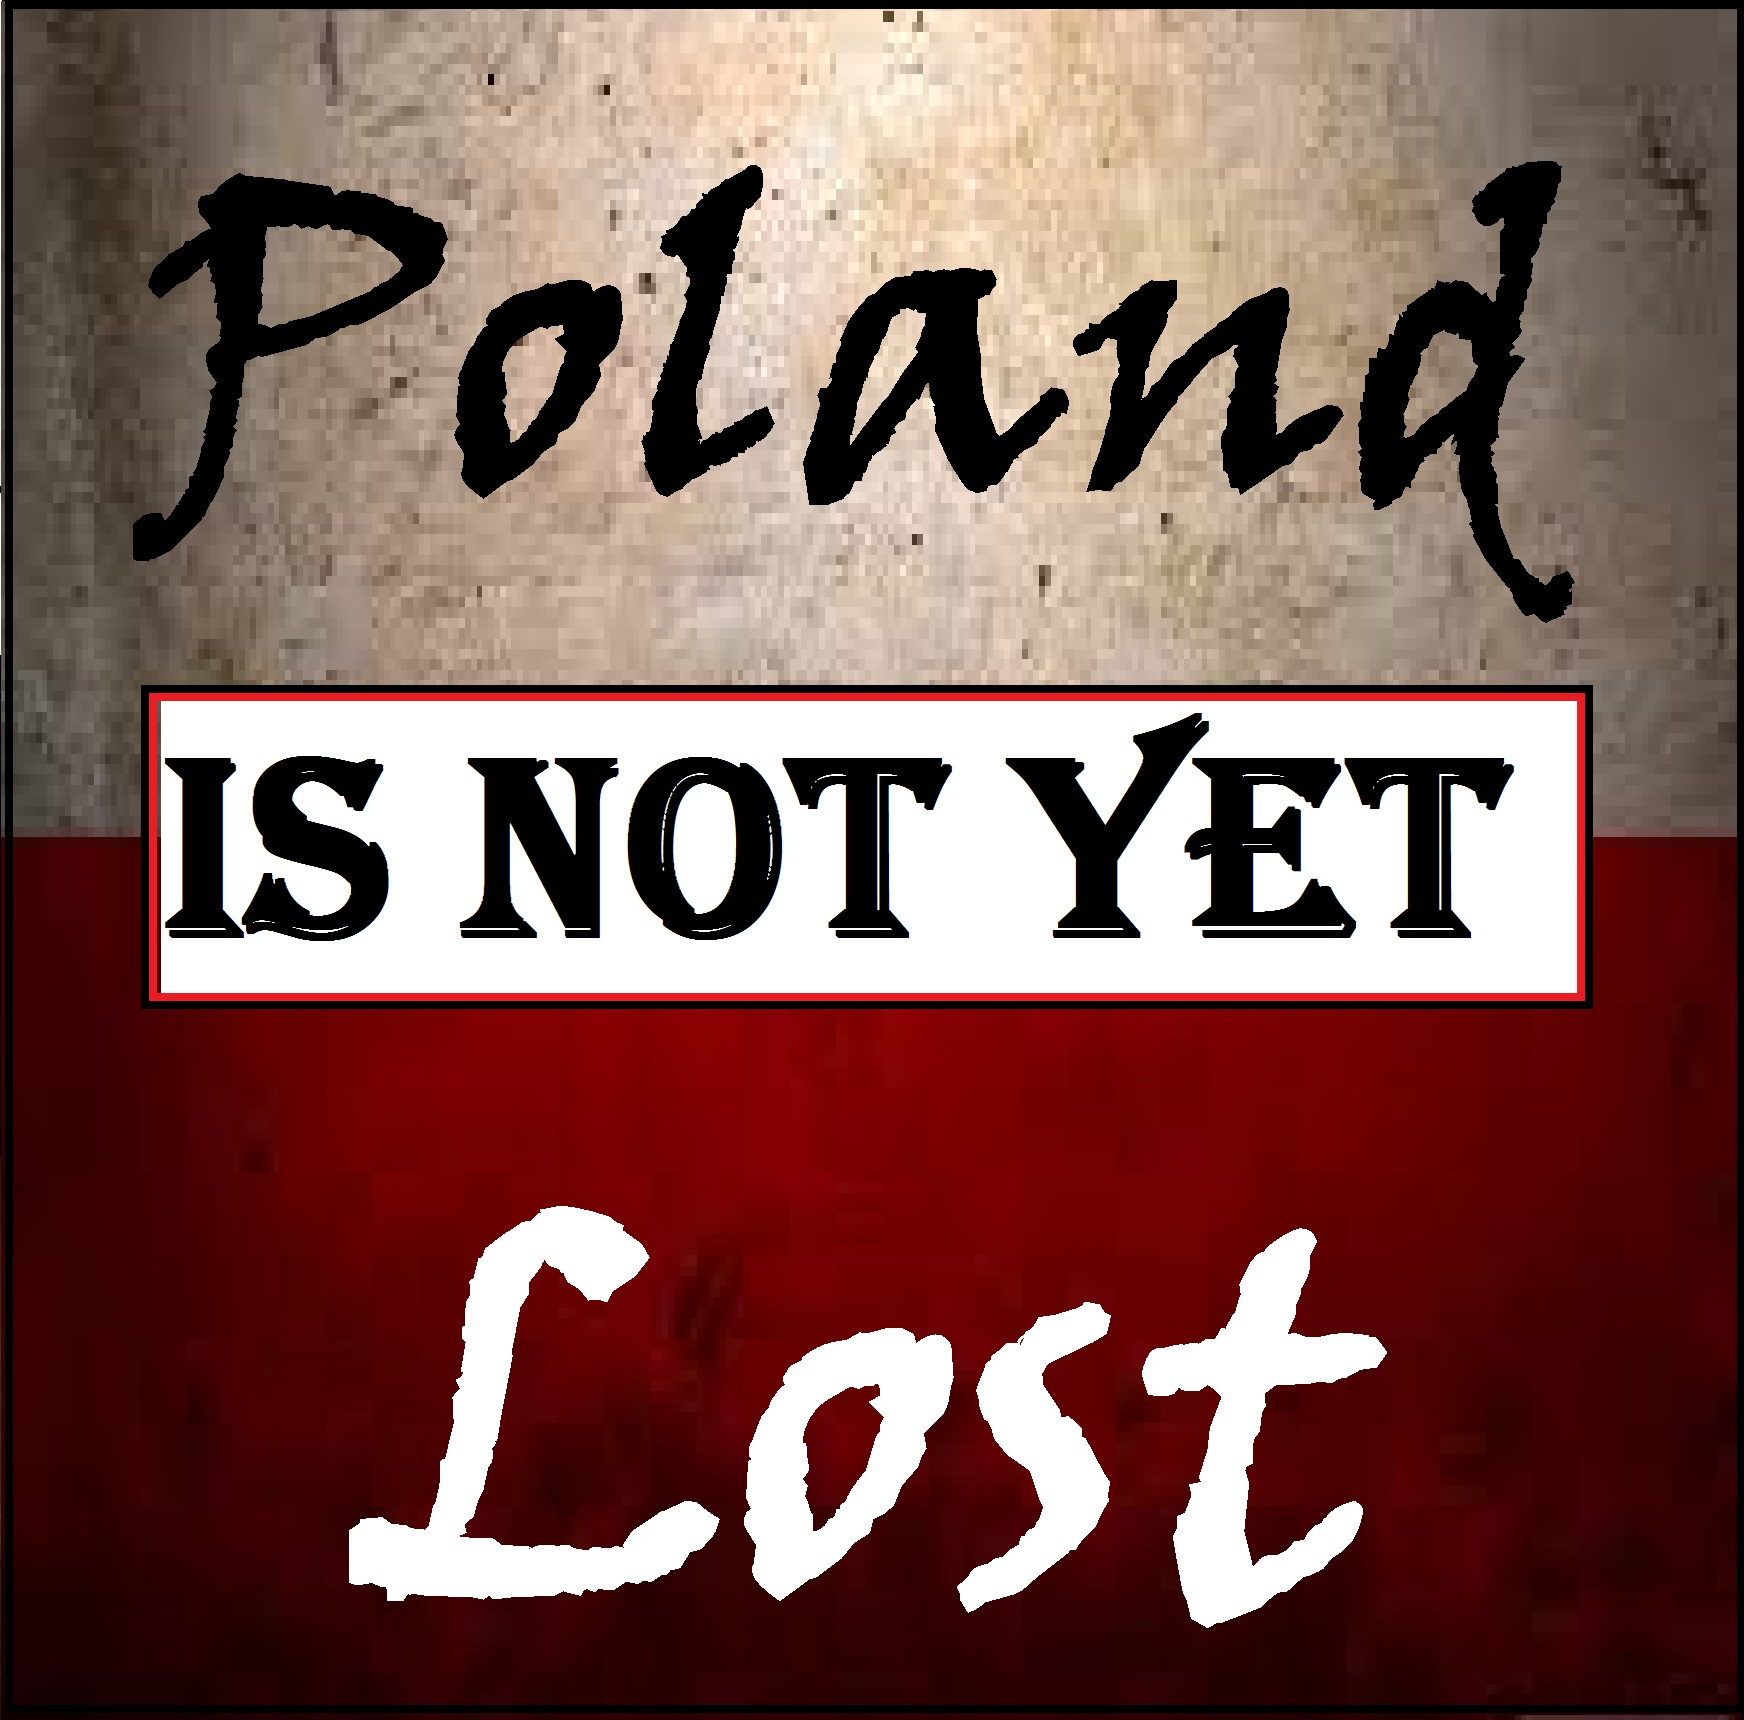 Poland Is Not Yet Lost will involve us travelling to the Polish-Lithuanian Commonwealth in the 18th century, as we try to ascertain how this enormous, cultured, vibrant state vanished off the map of Europe by 1795. I hope you'll tune in!